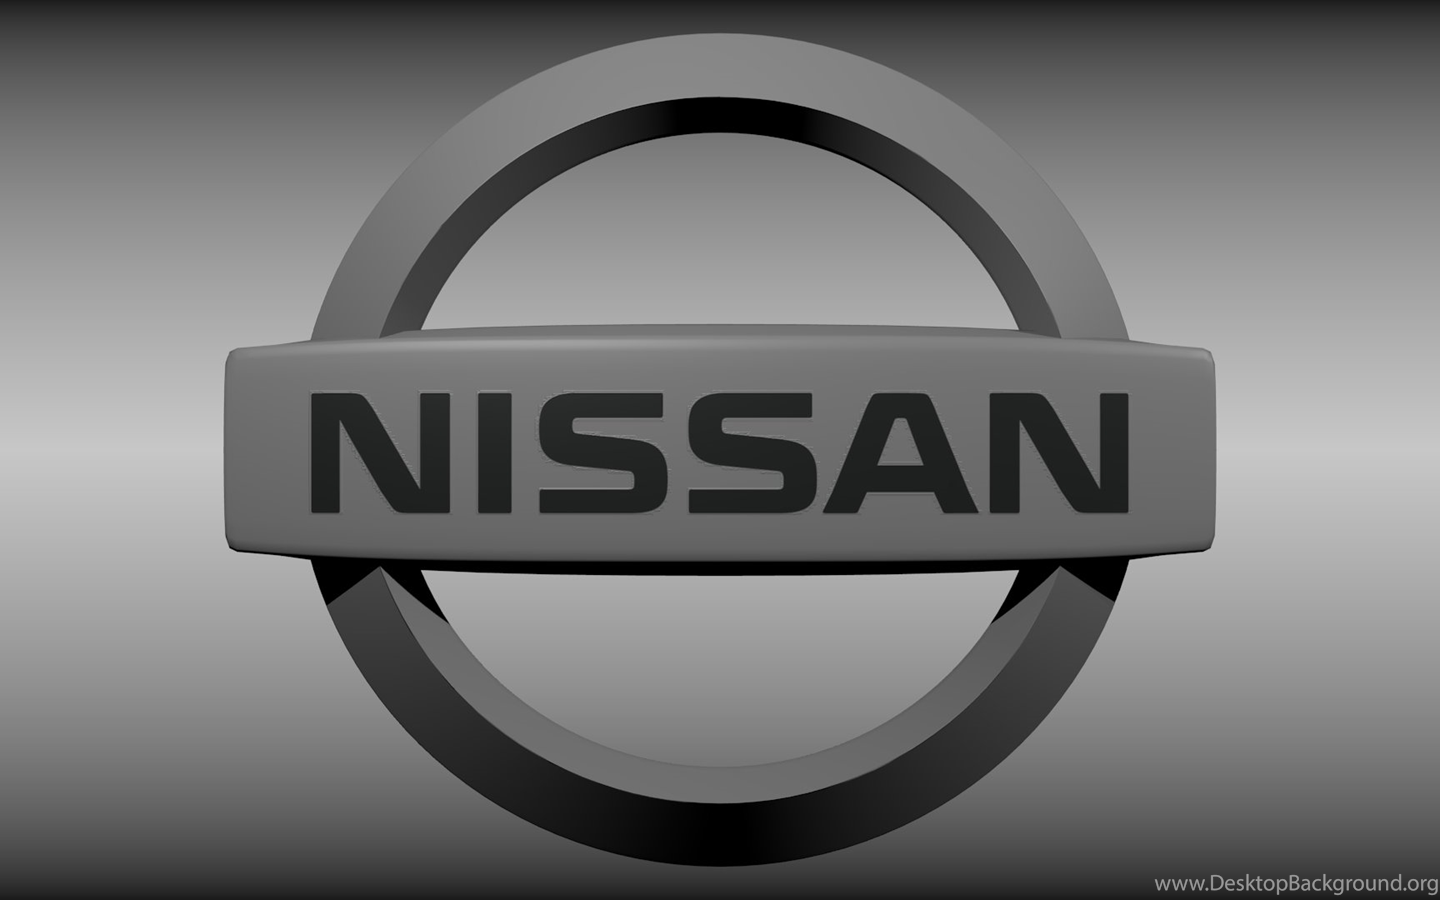 nissan logo transparent. widescreen nissan logo transparent